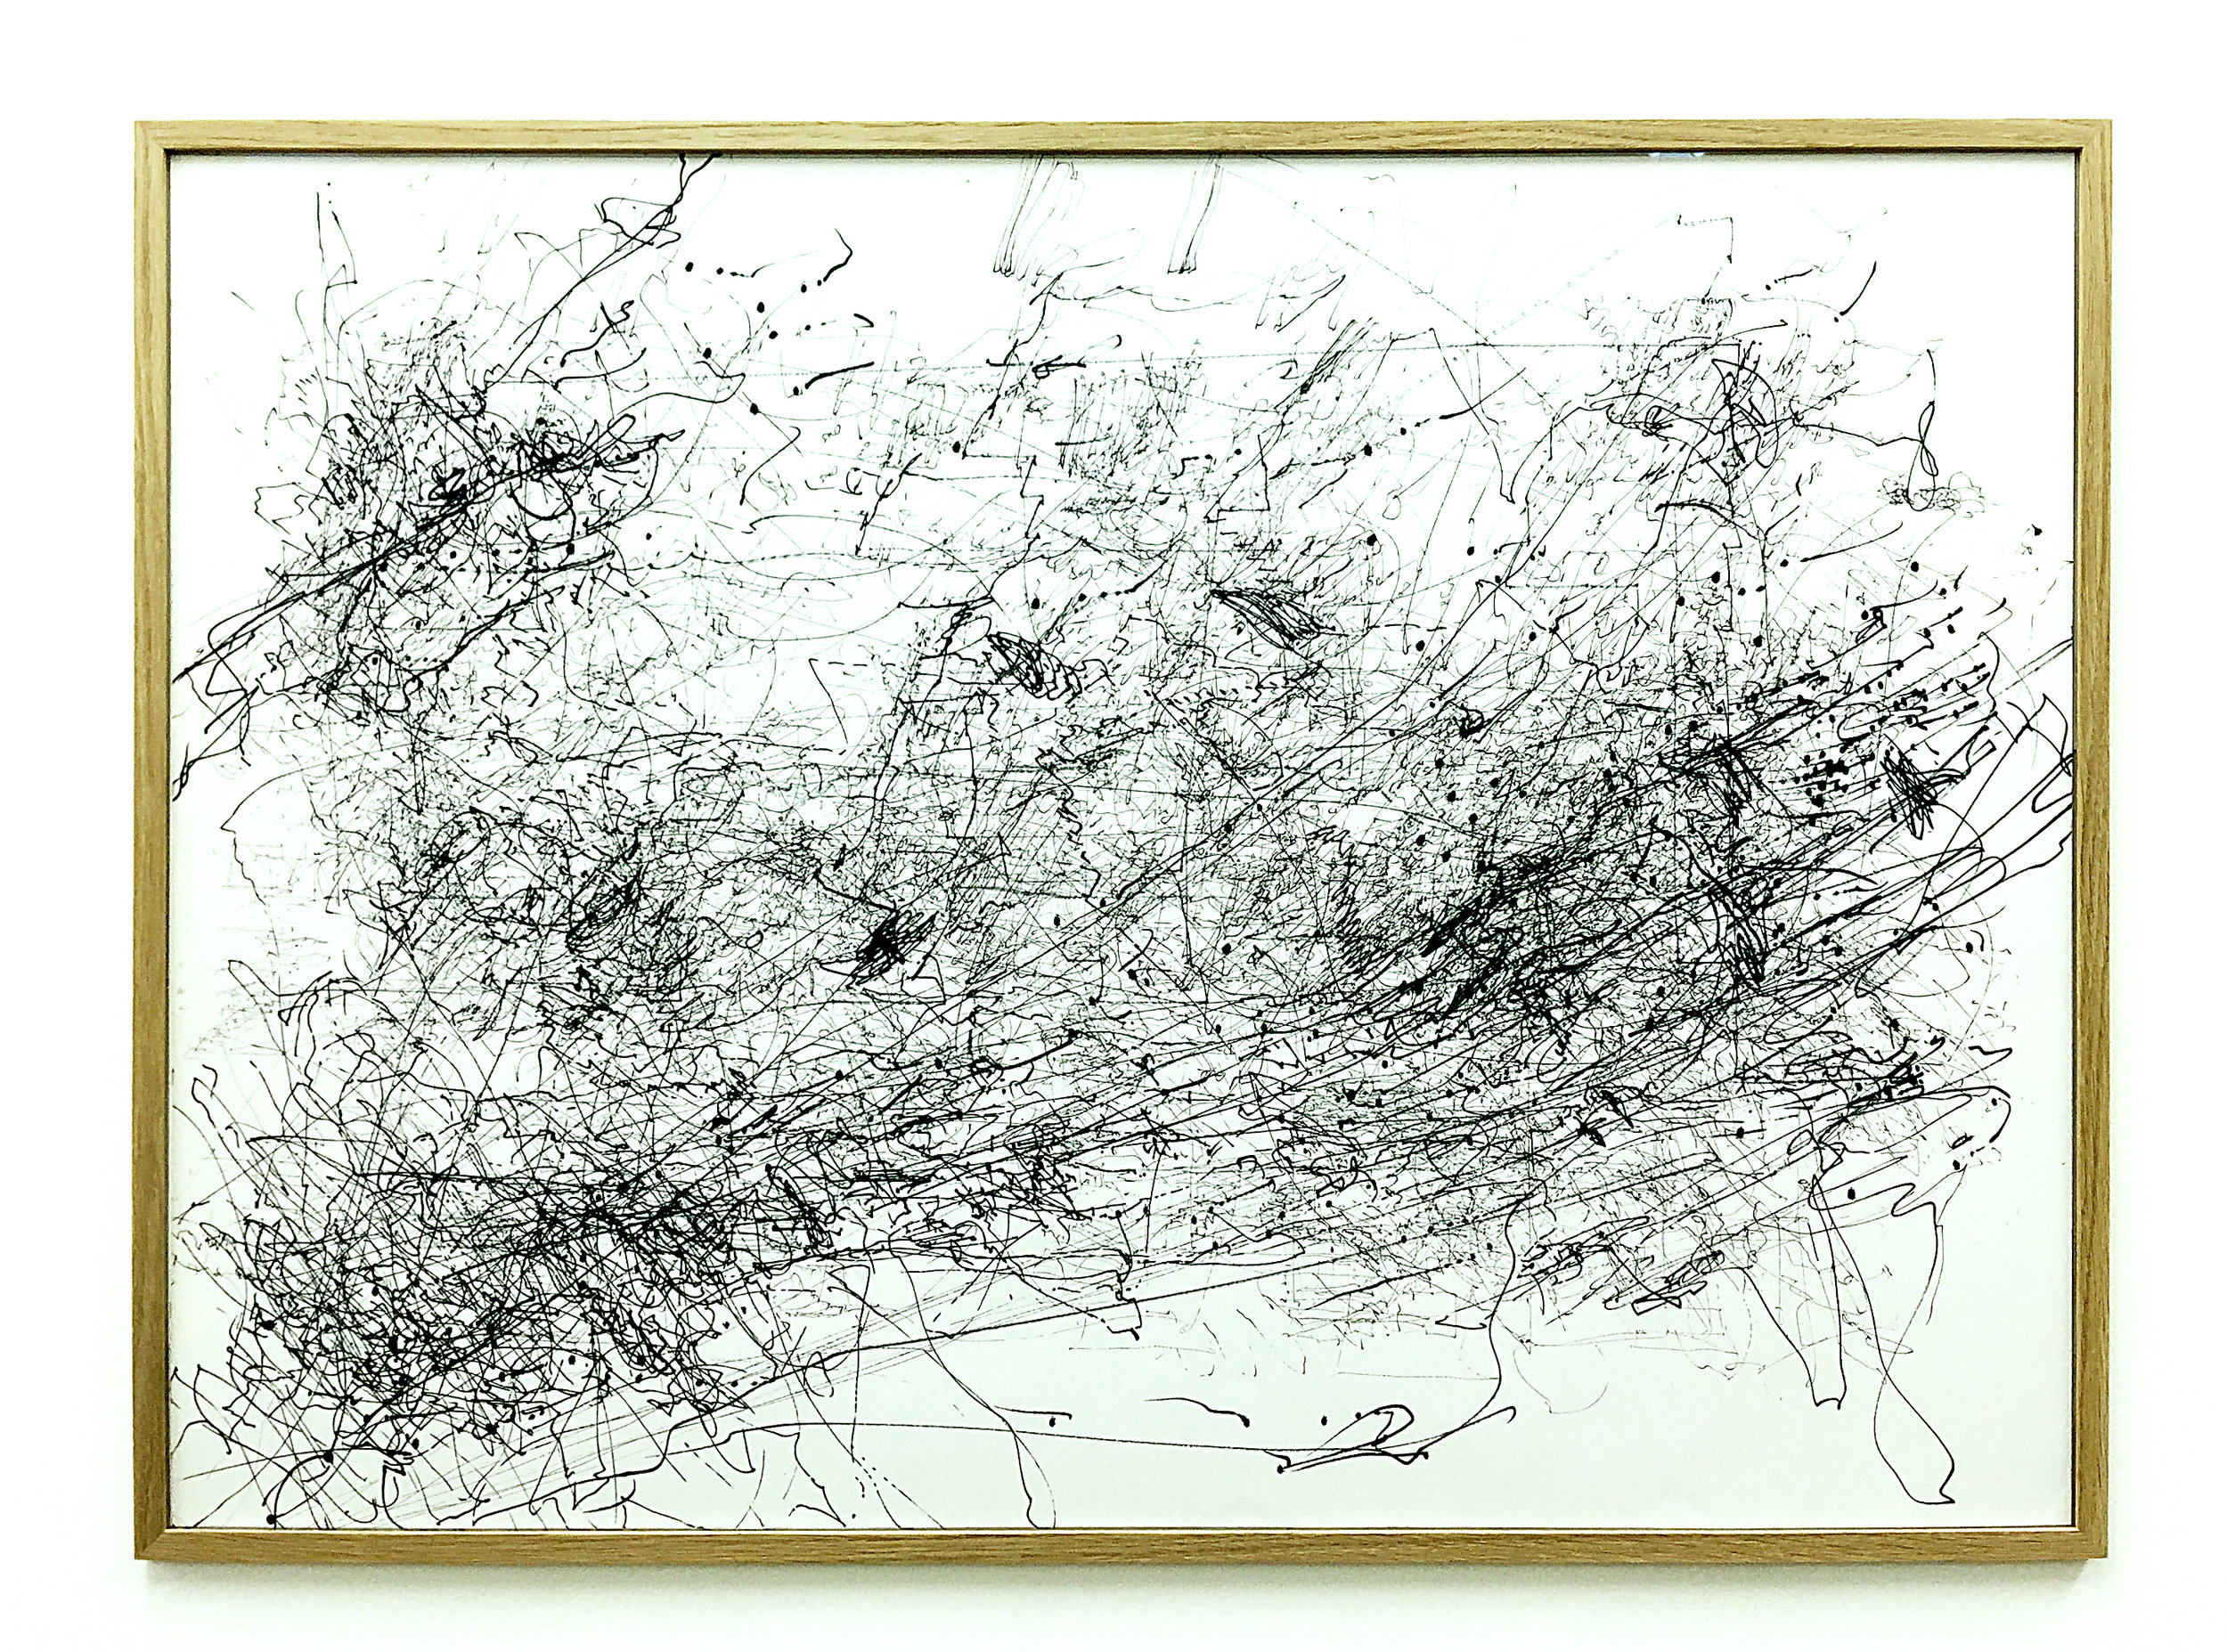 Freigeregelte apparative Zeichnungen (Untitled No.11) , 1990, magnetically manipulated plotter drawing / ink on paper, 63.5 86.5 cm